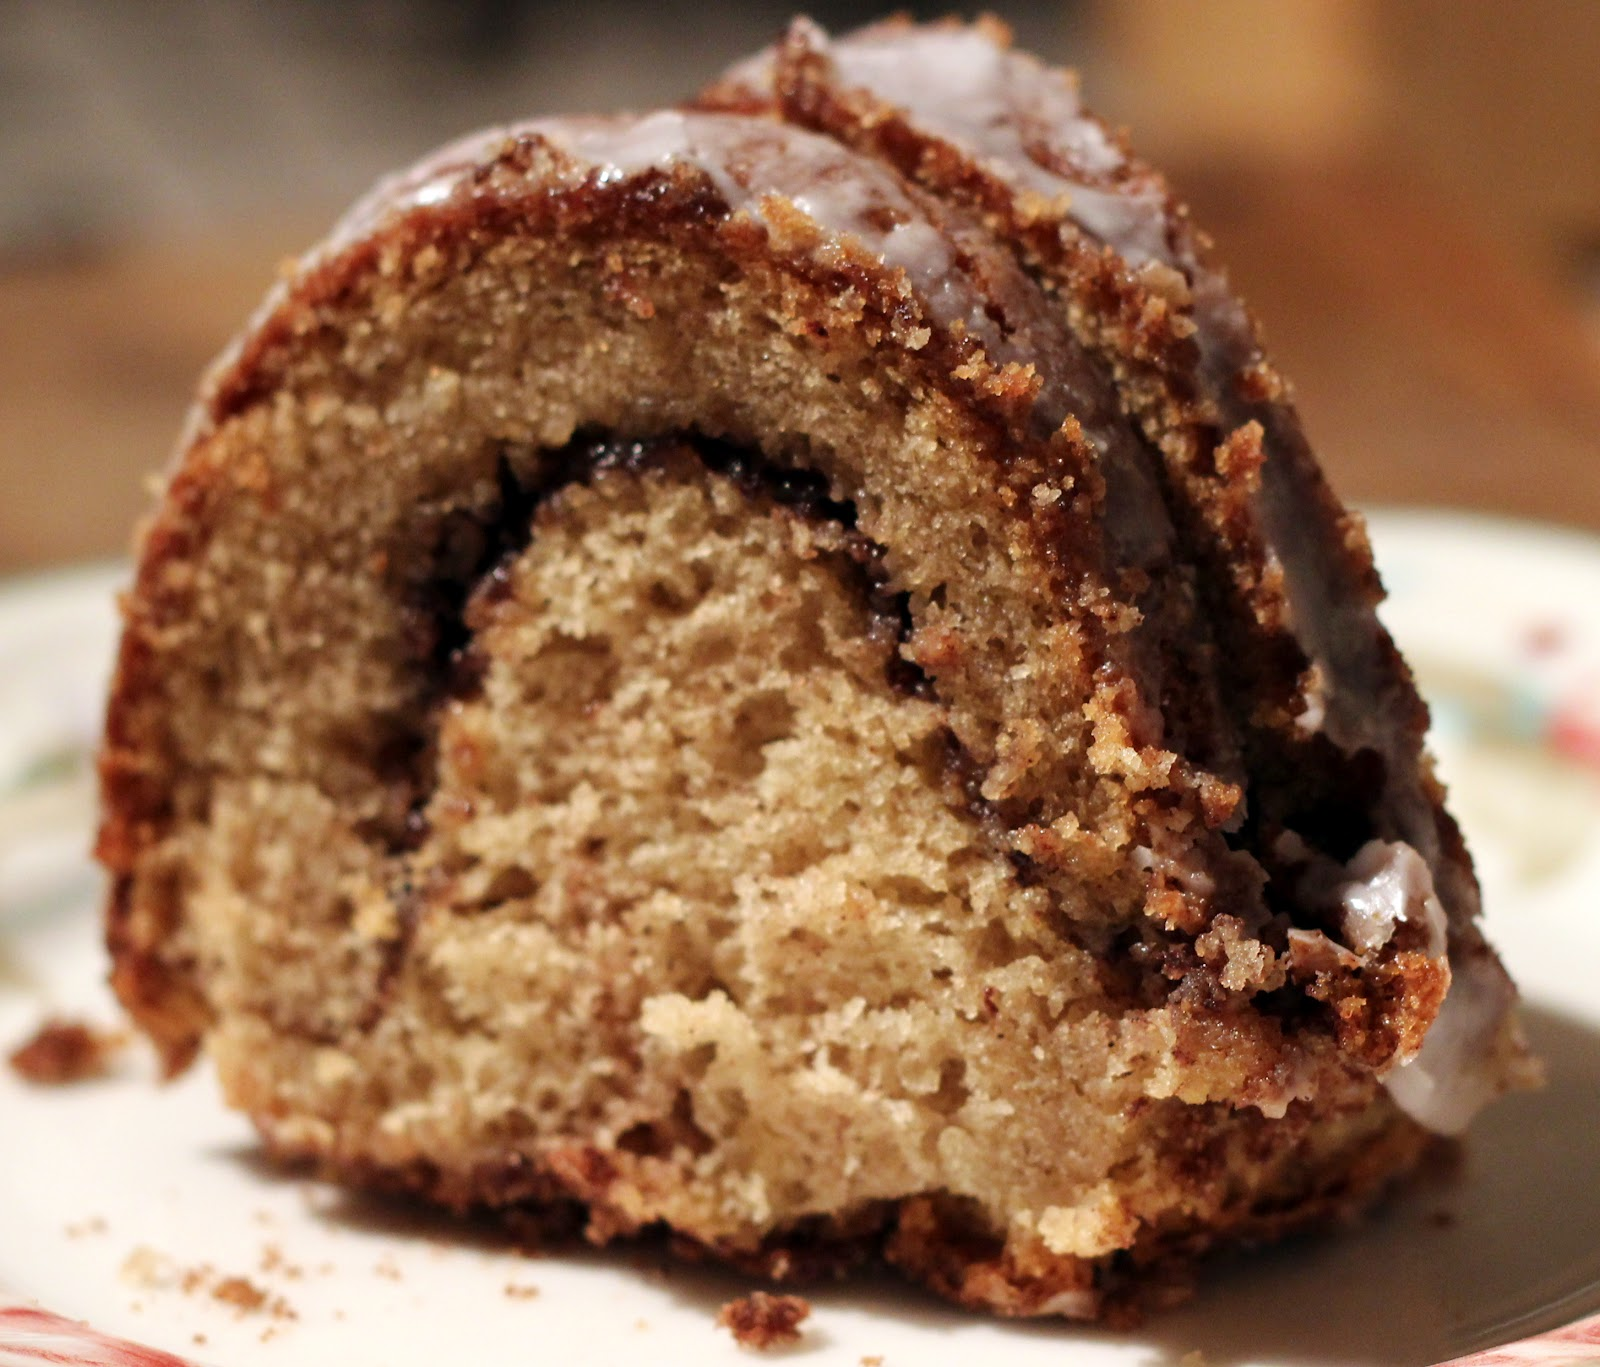 The Dinner Club: Cinnamon Swirl Bundt Cake